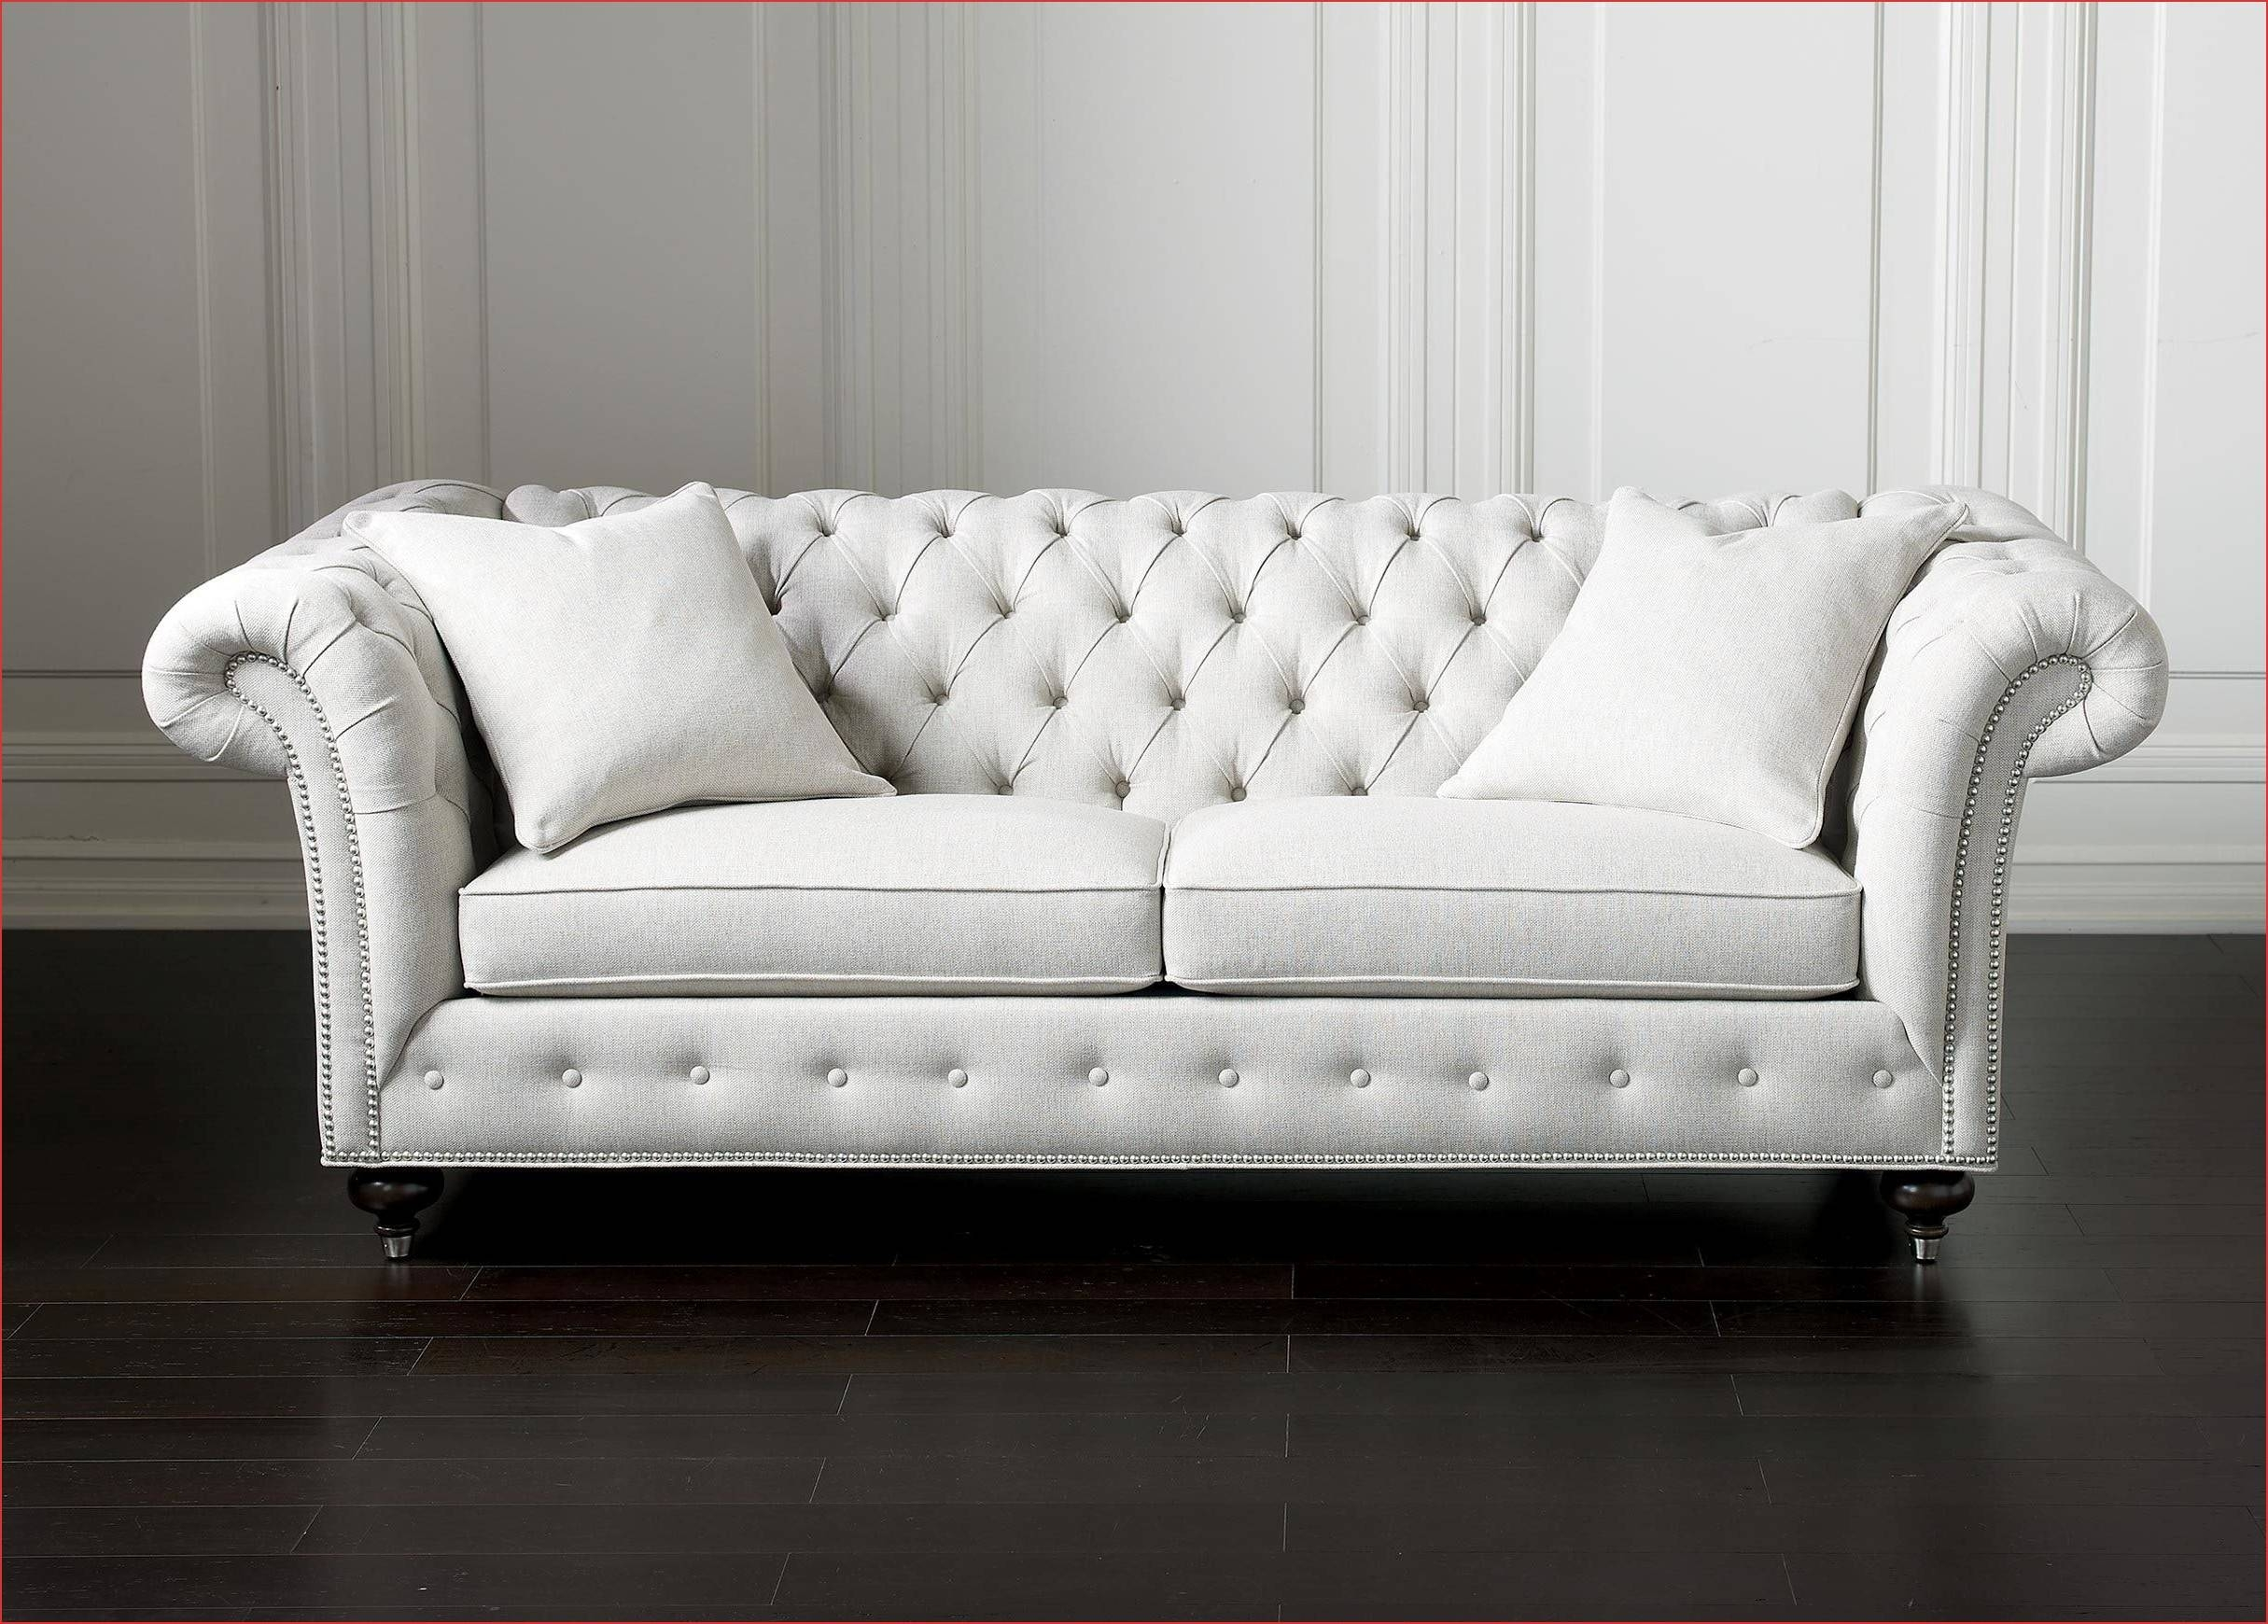 Ethan Allen Whitney Sofa Beautiful Furniture Ethan Allen Leather with regard to Ethan Allen Whitney Sofas (Image 2 of 15)